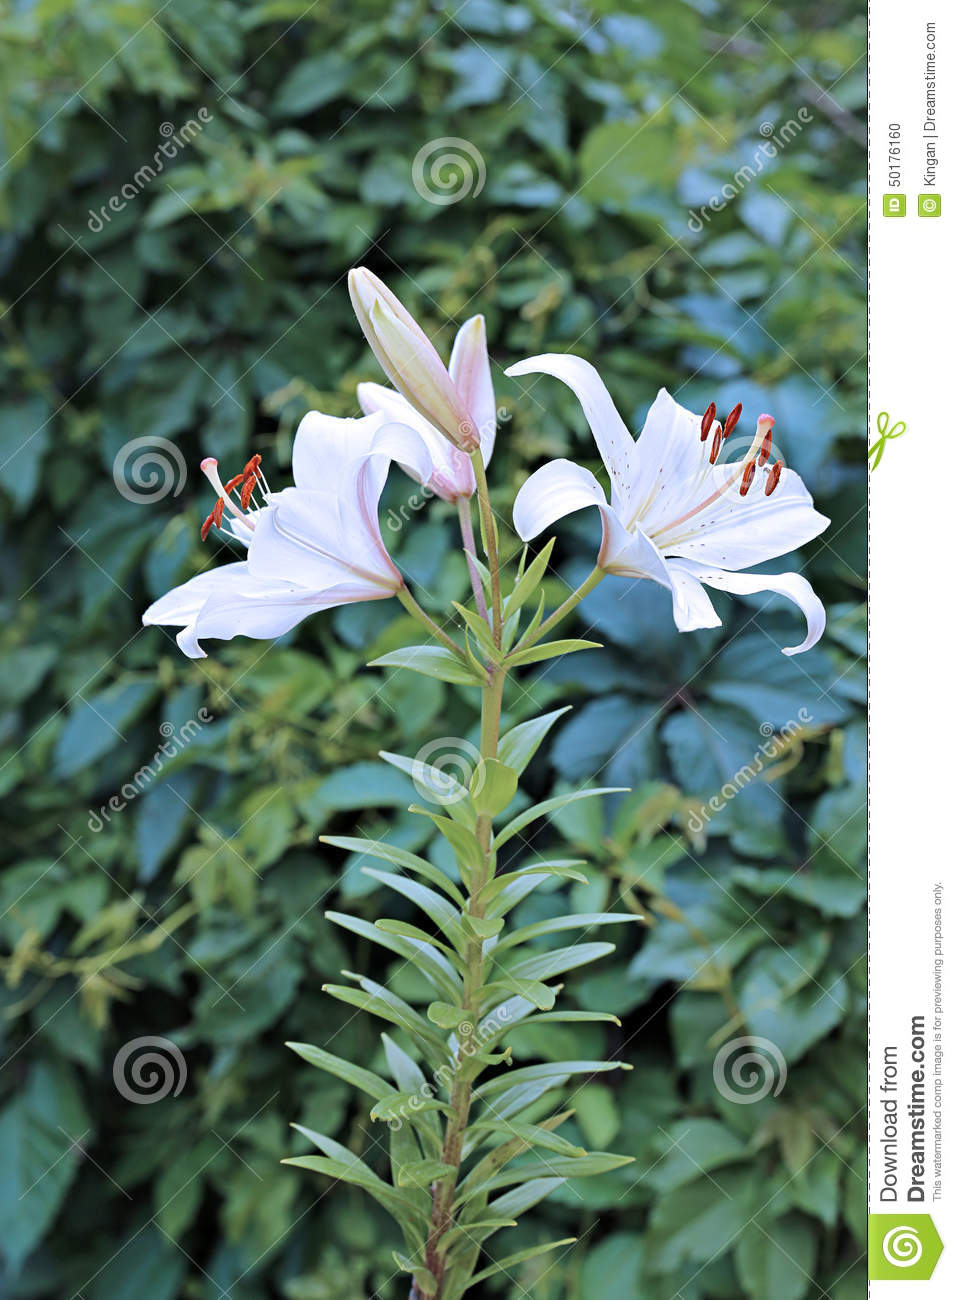 Many flowers and buds of white lilies stock photo image of allergy royalty free stock photo izmirmasajfo